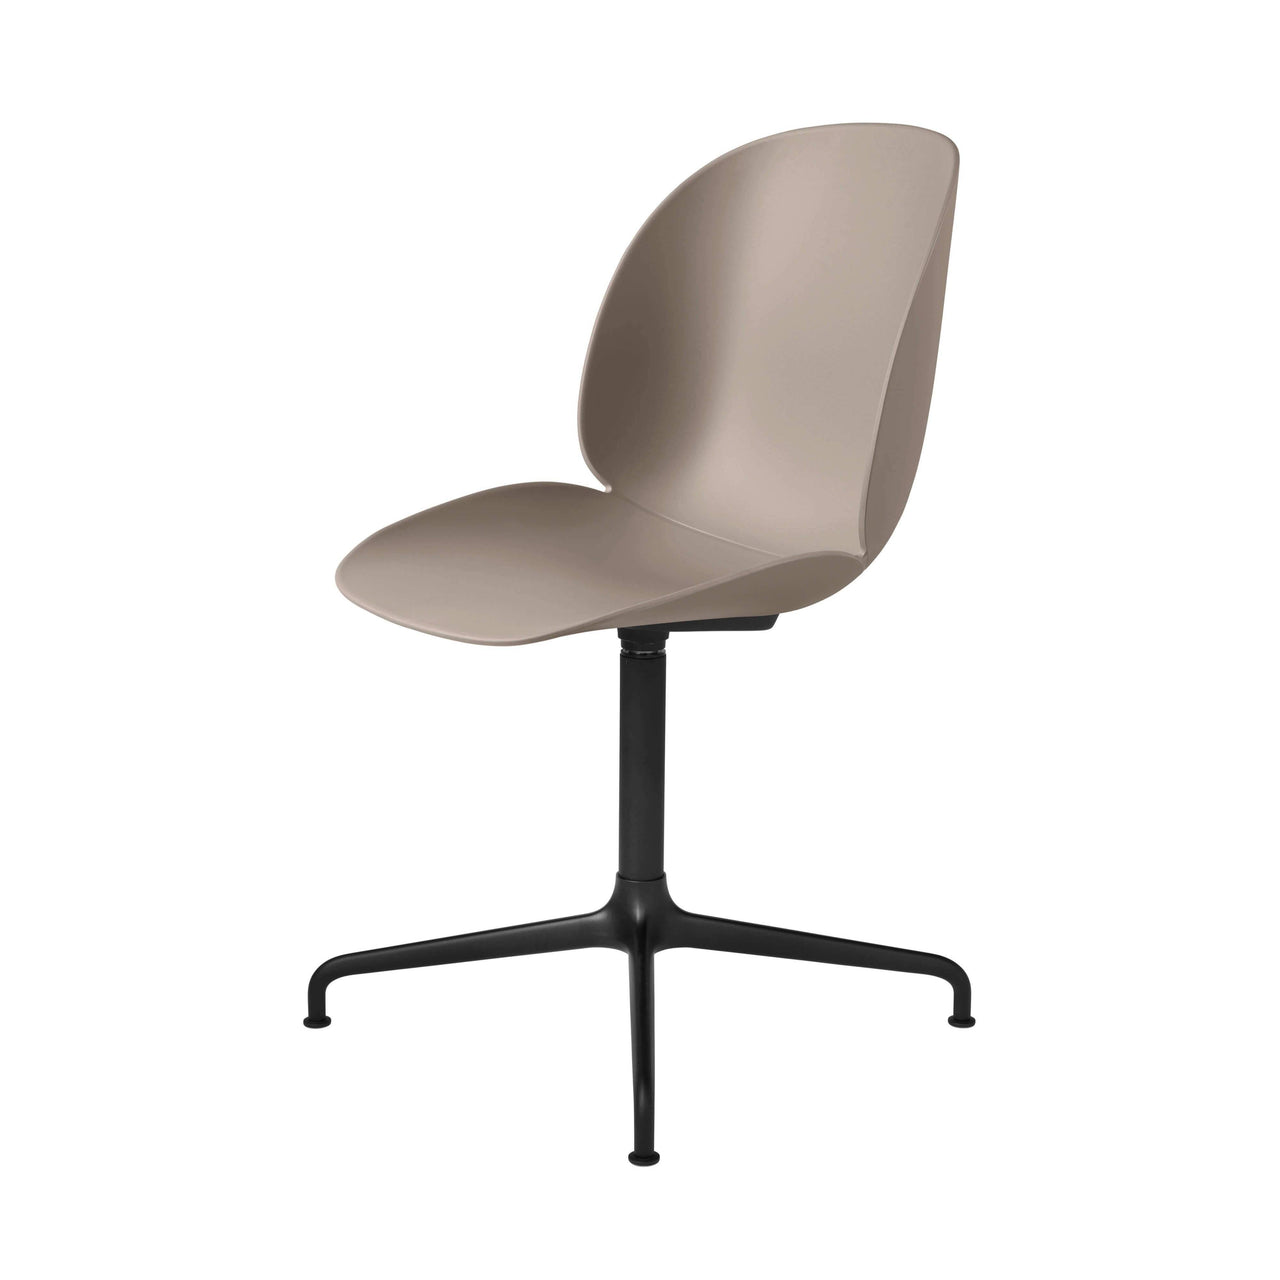 Beetle Meeting Chair: 4-Star Swivel Base: New Beige + Black Matte Base + Plastic Glides